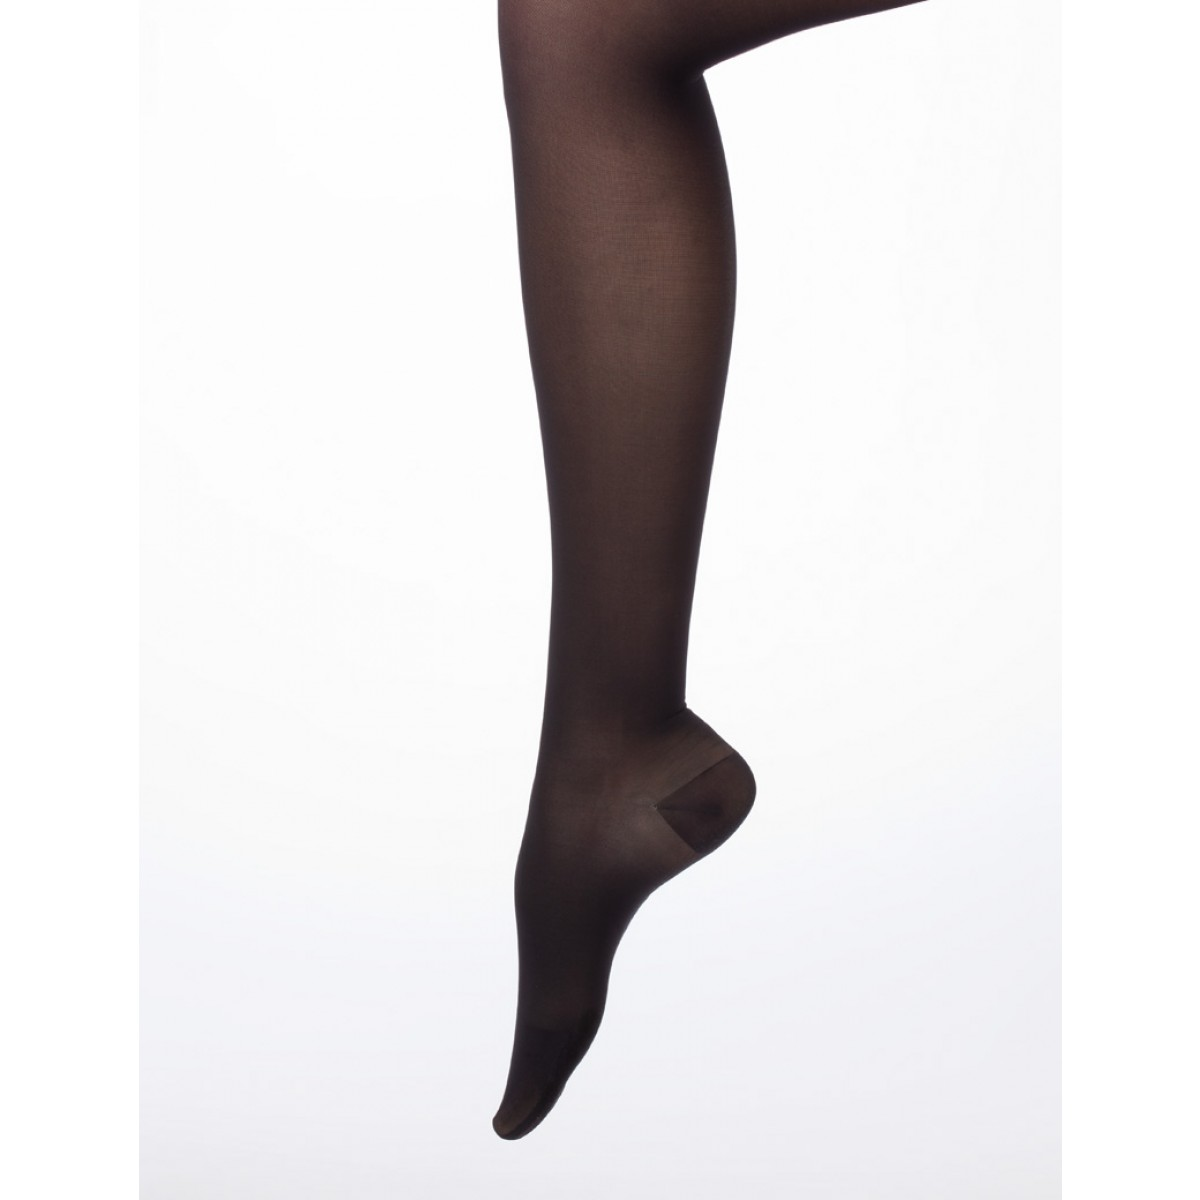 ITEM m6 Shapewear Tights Translucent Black-35